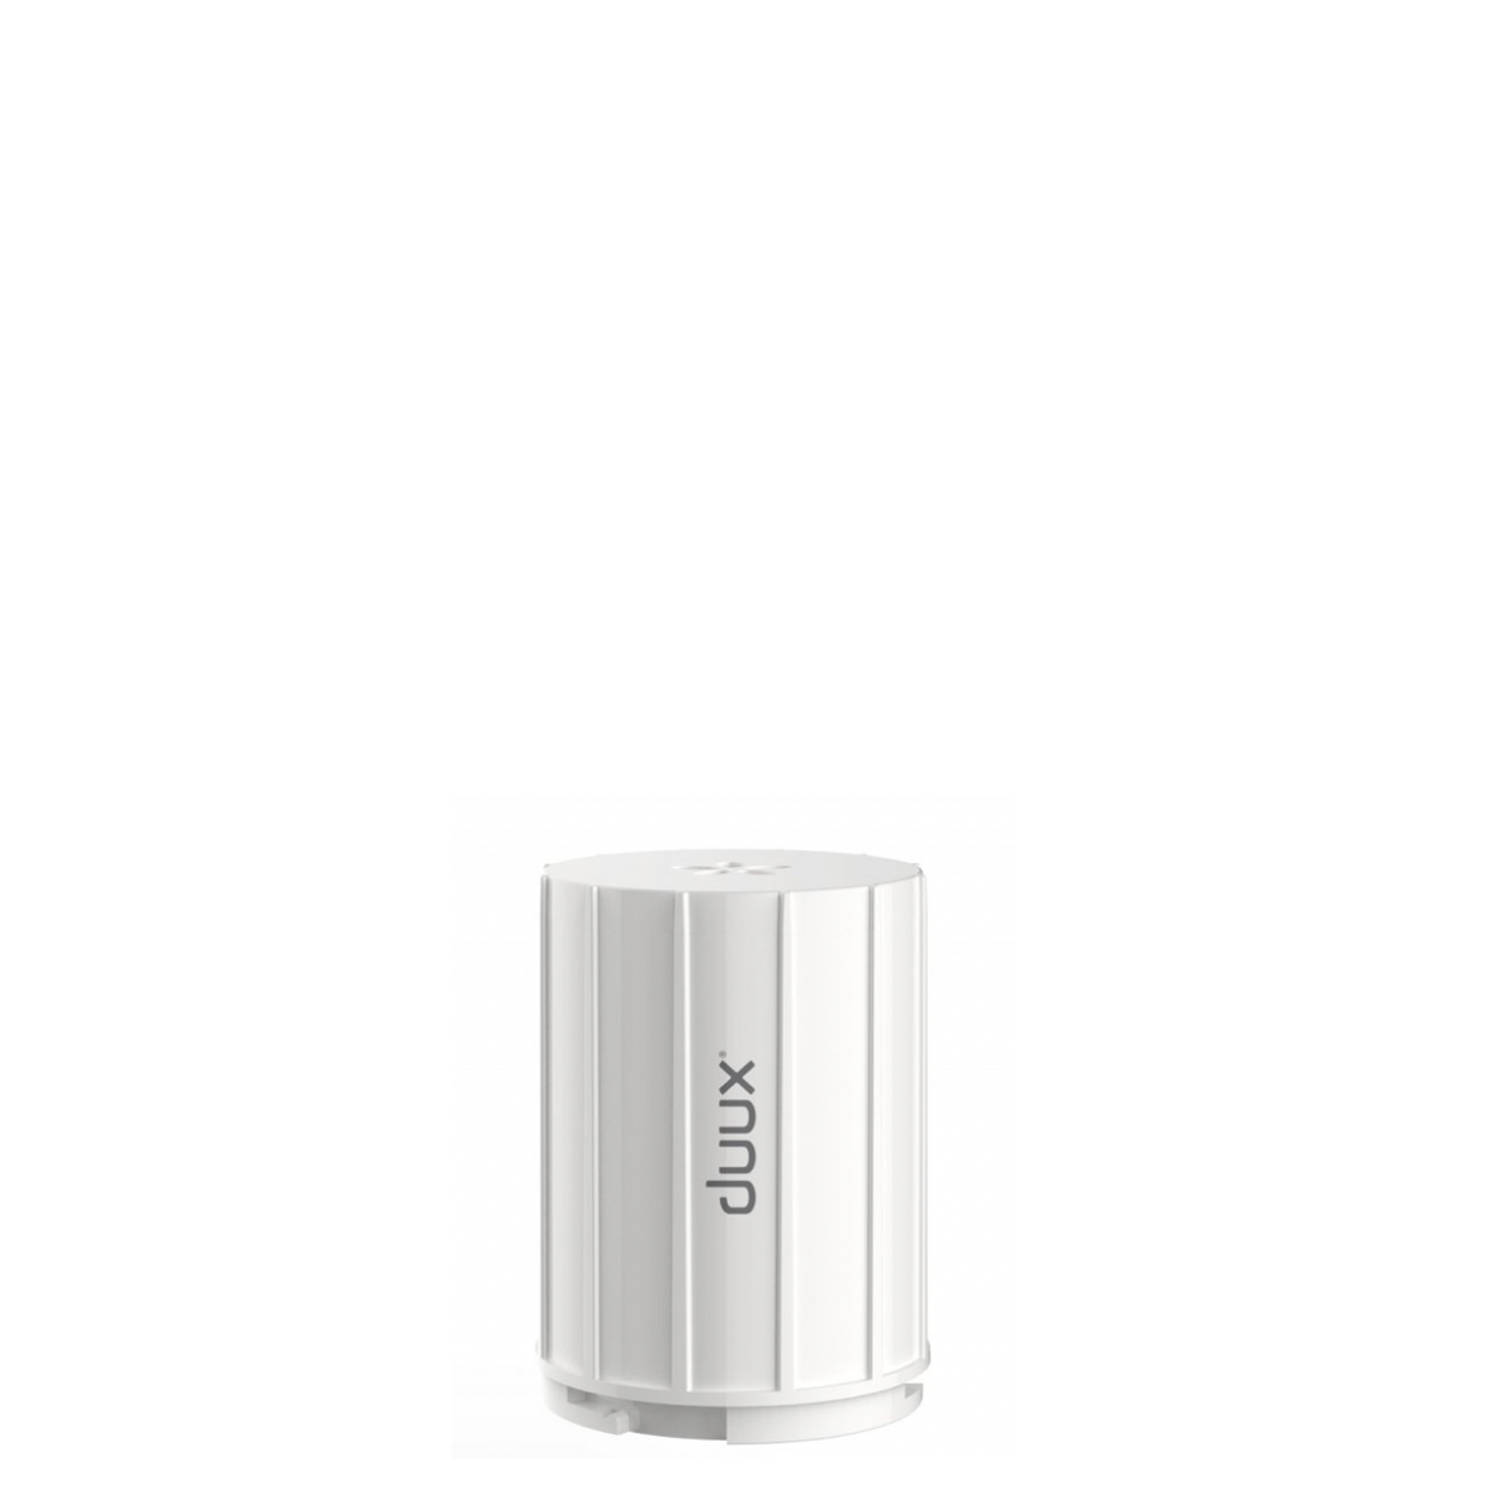 Duux Tag Filter Cartridge